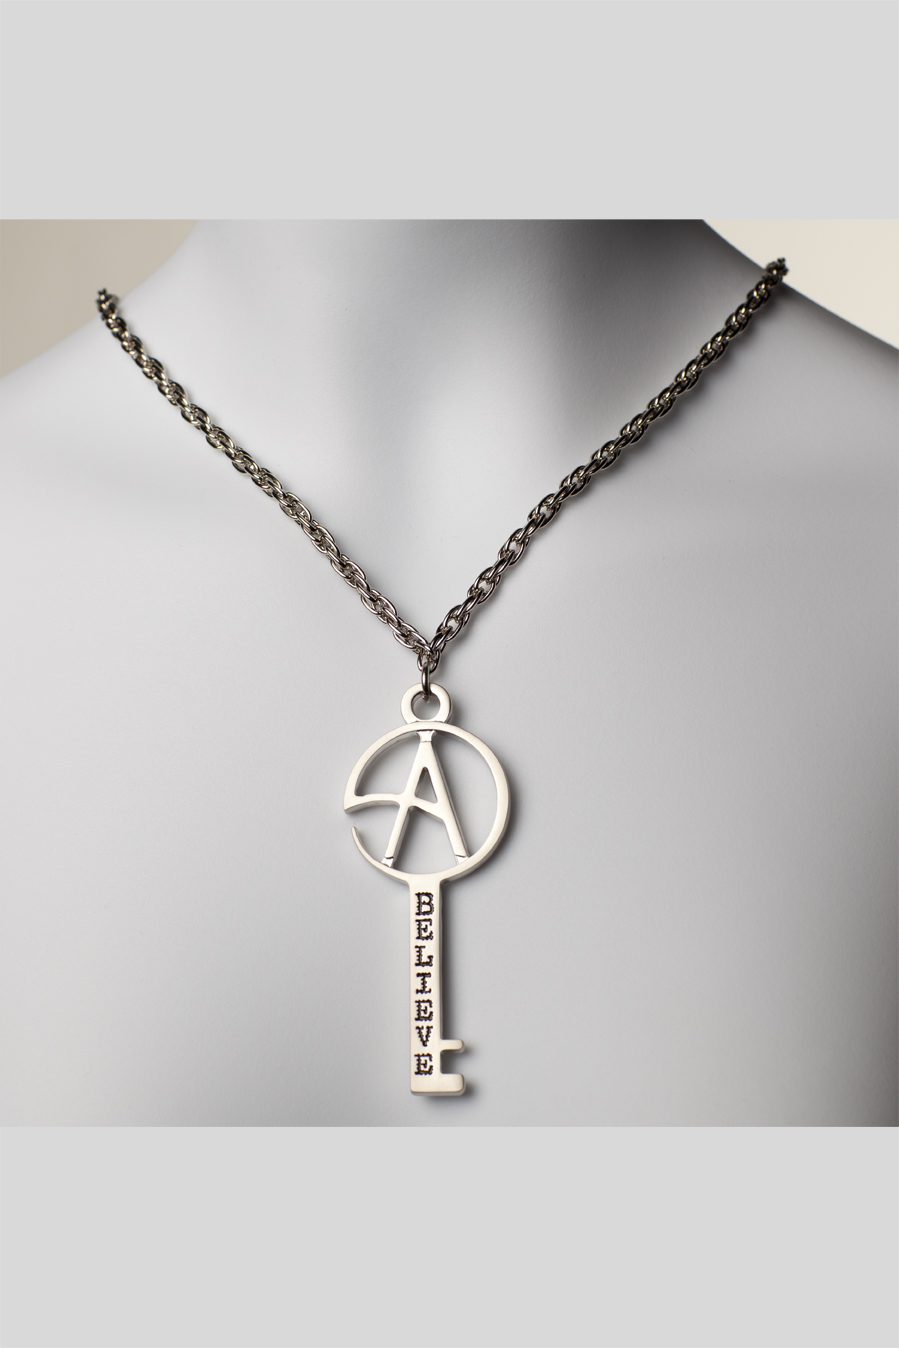 NECKLACE CA KEY TO BELIEVING-1424